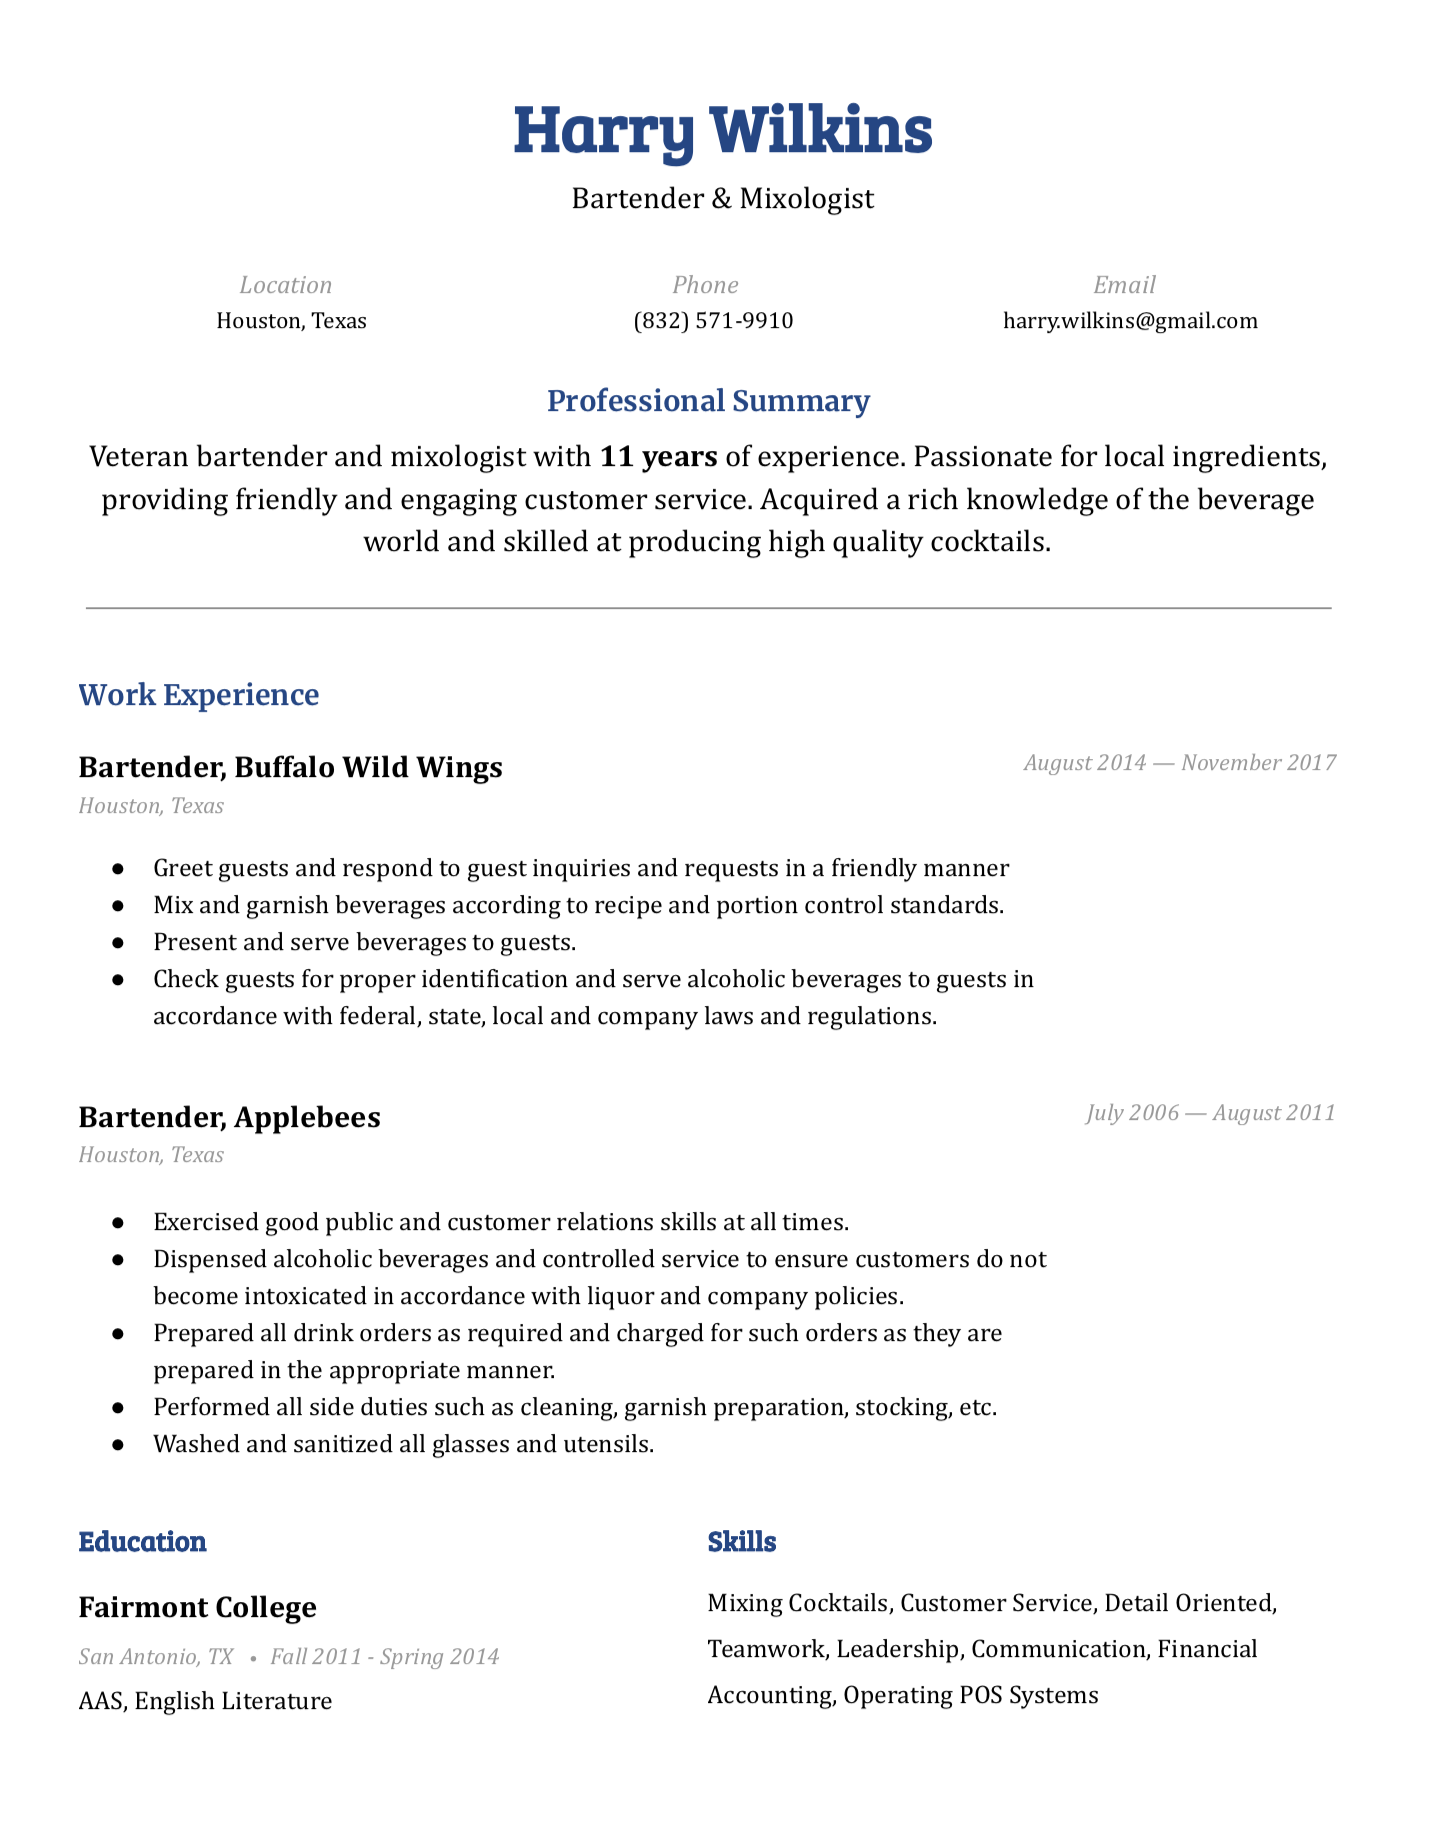 Fulton Google Doc Resume Template Free Download Easy Resume